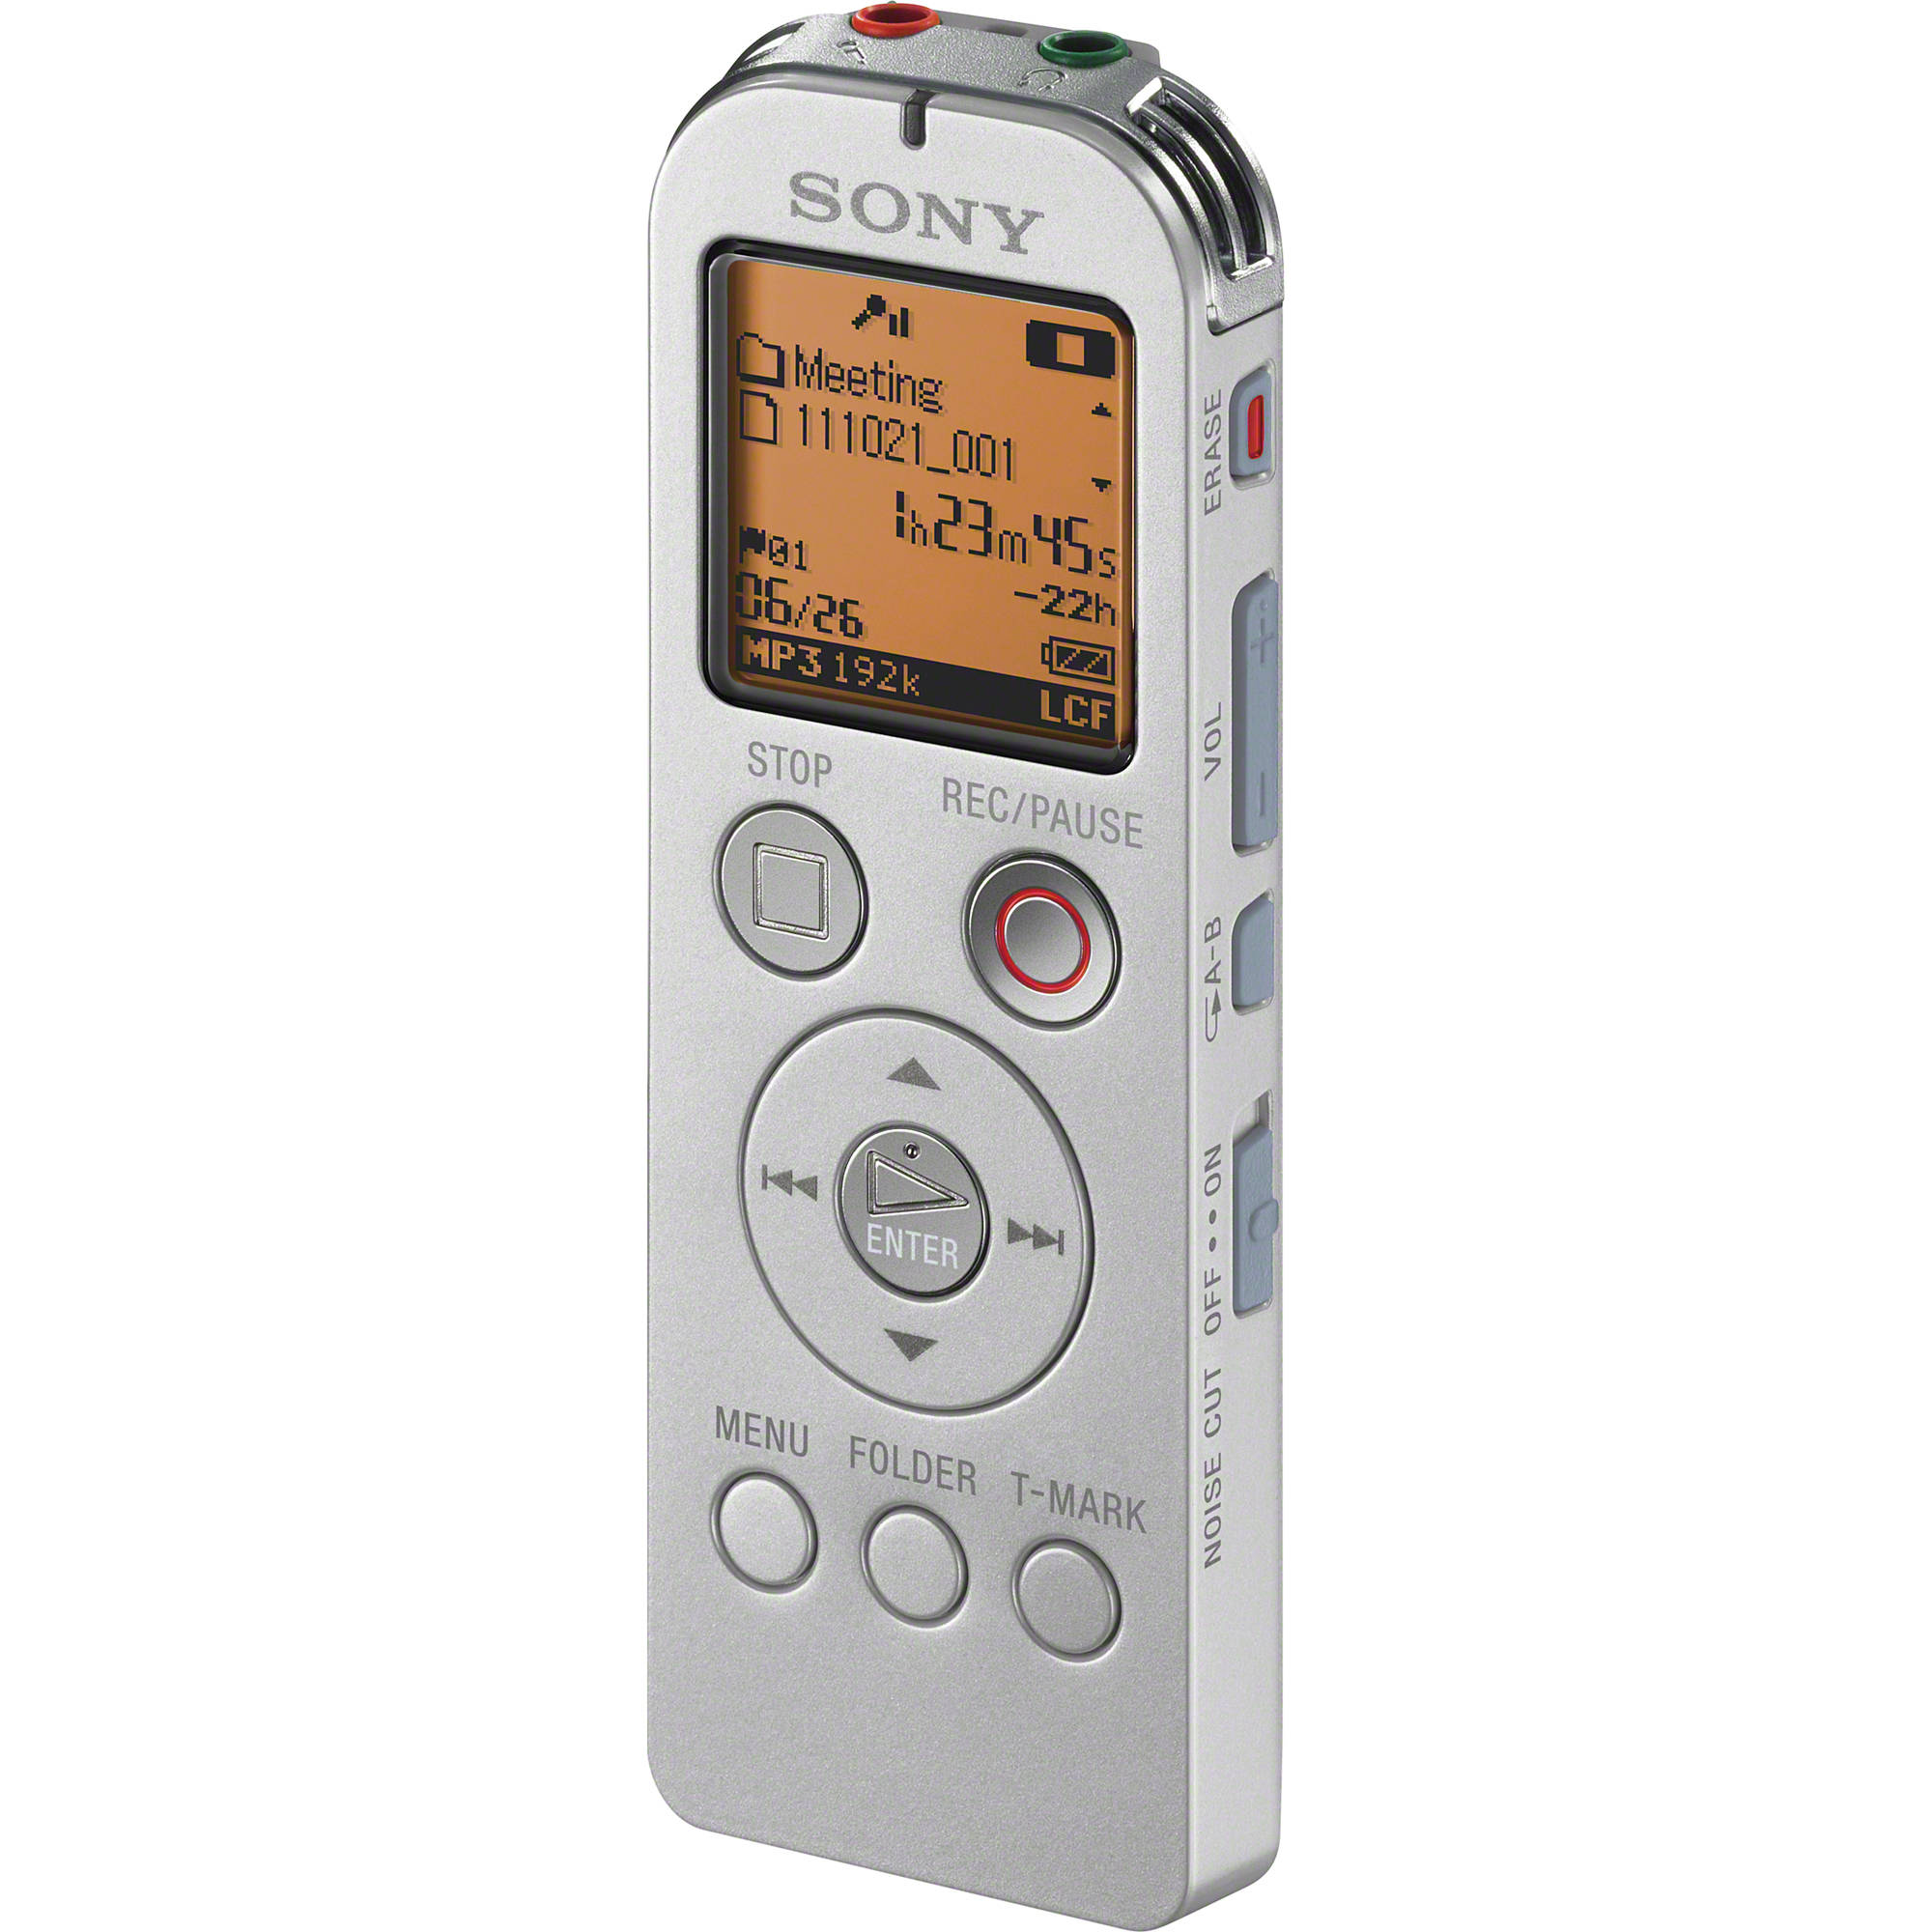 sony icd ux523 digital flash voice recorder silver icd ux523 rh bhphotovideo com sony digital hd video camera recorder manual sony icd-bx140 digital voice recorder manual